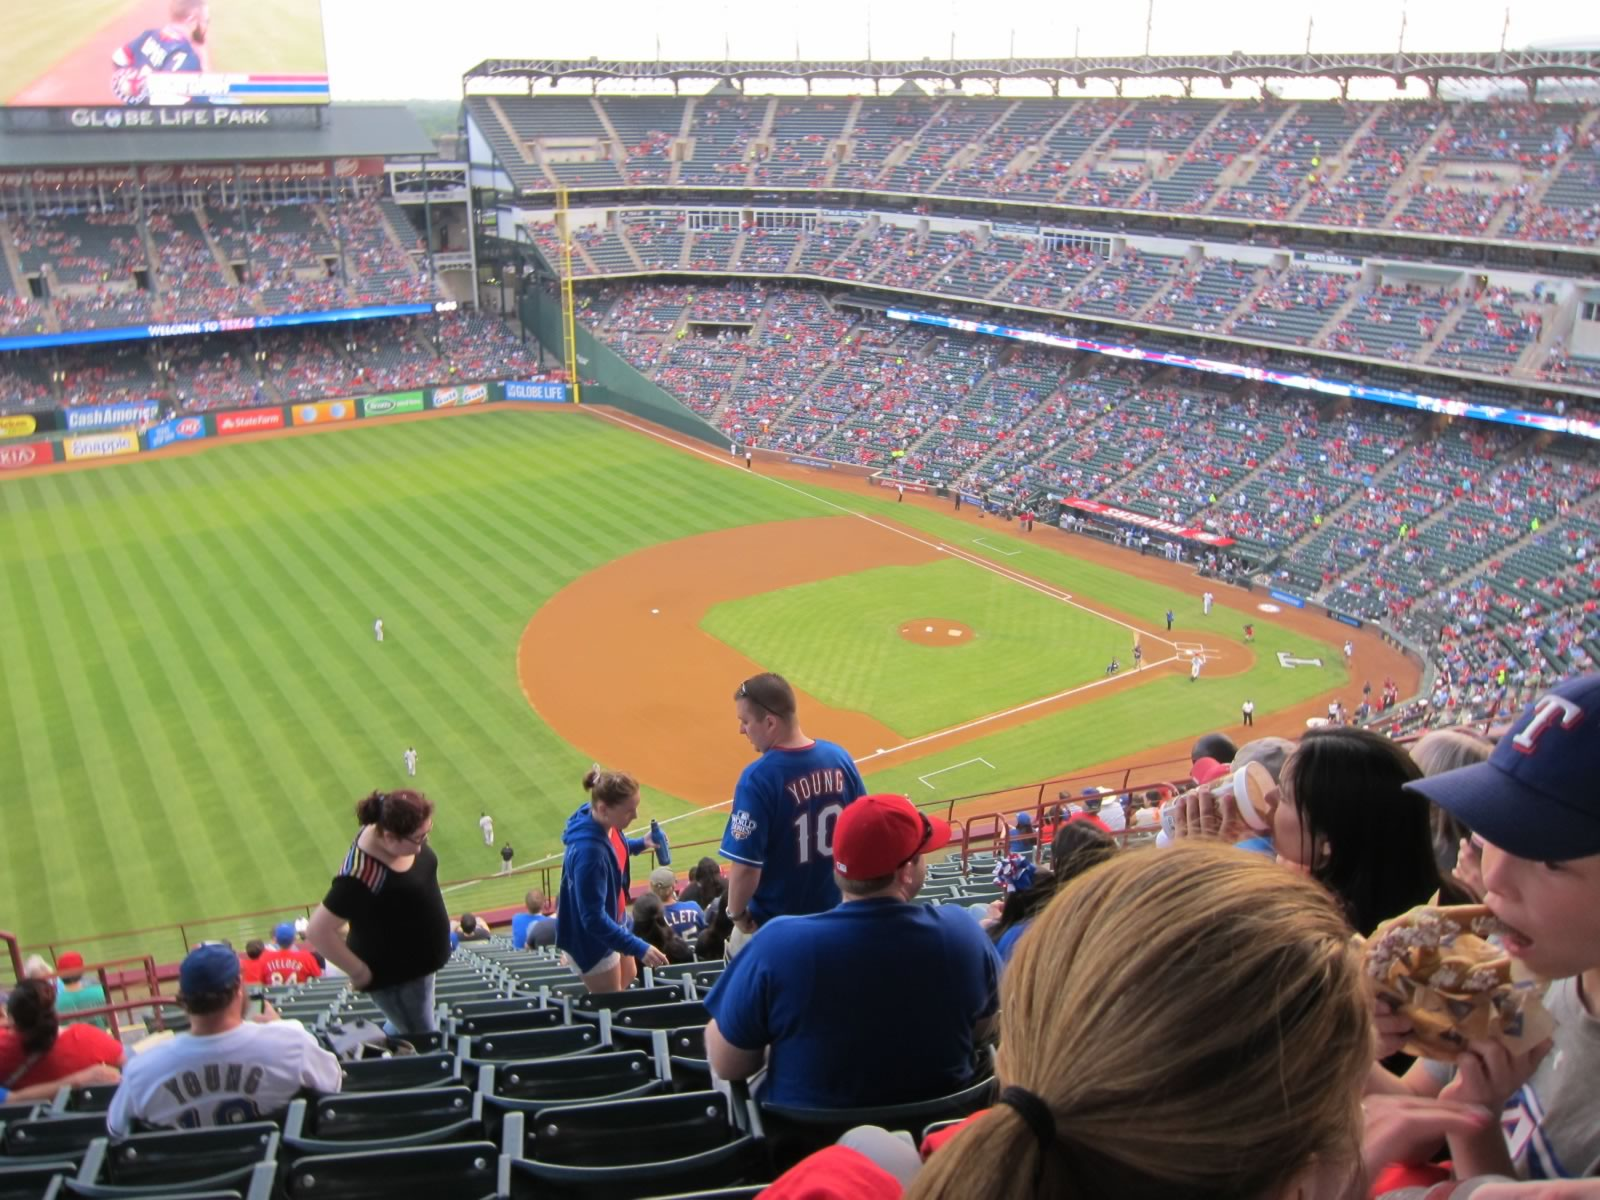 Seat View for Globe Life Park Section 315, Row 20, Seat 6